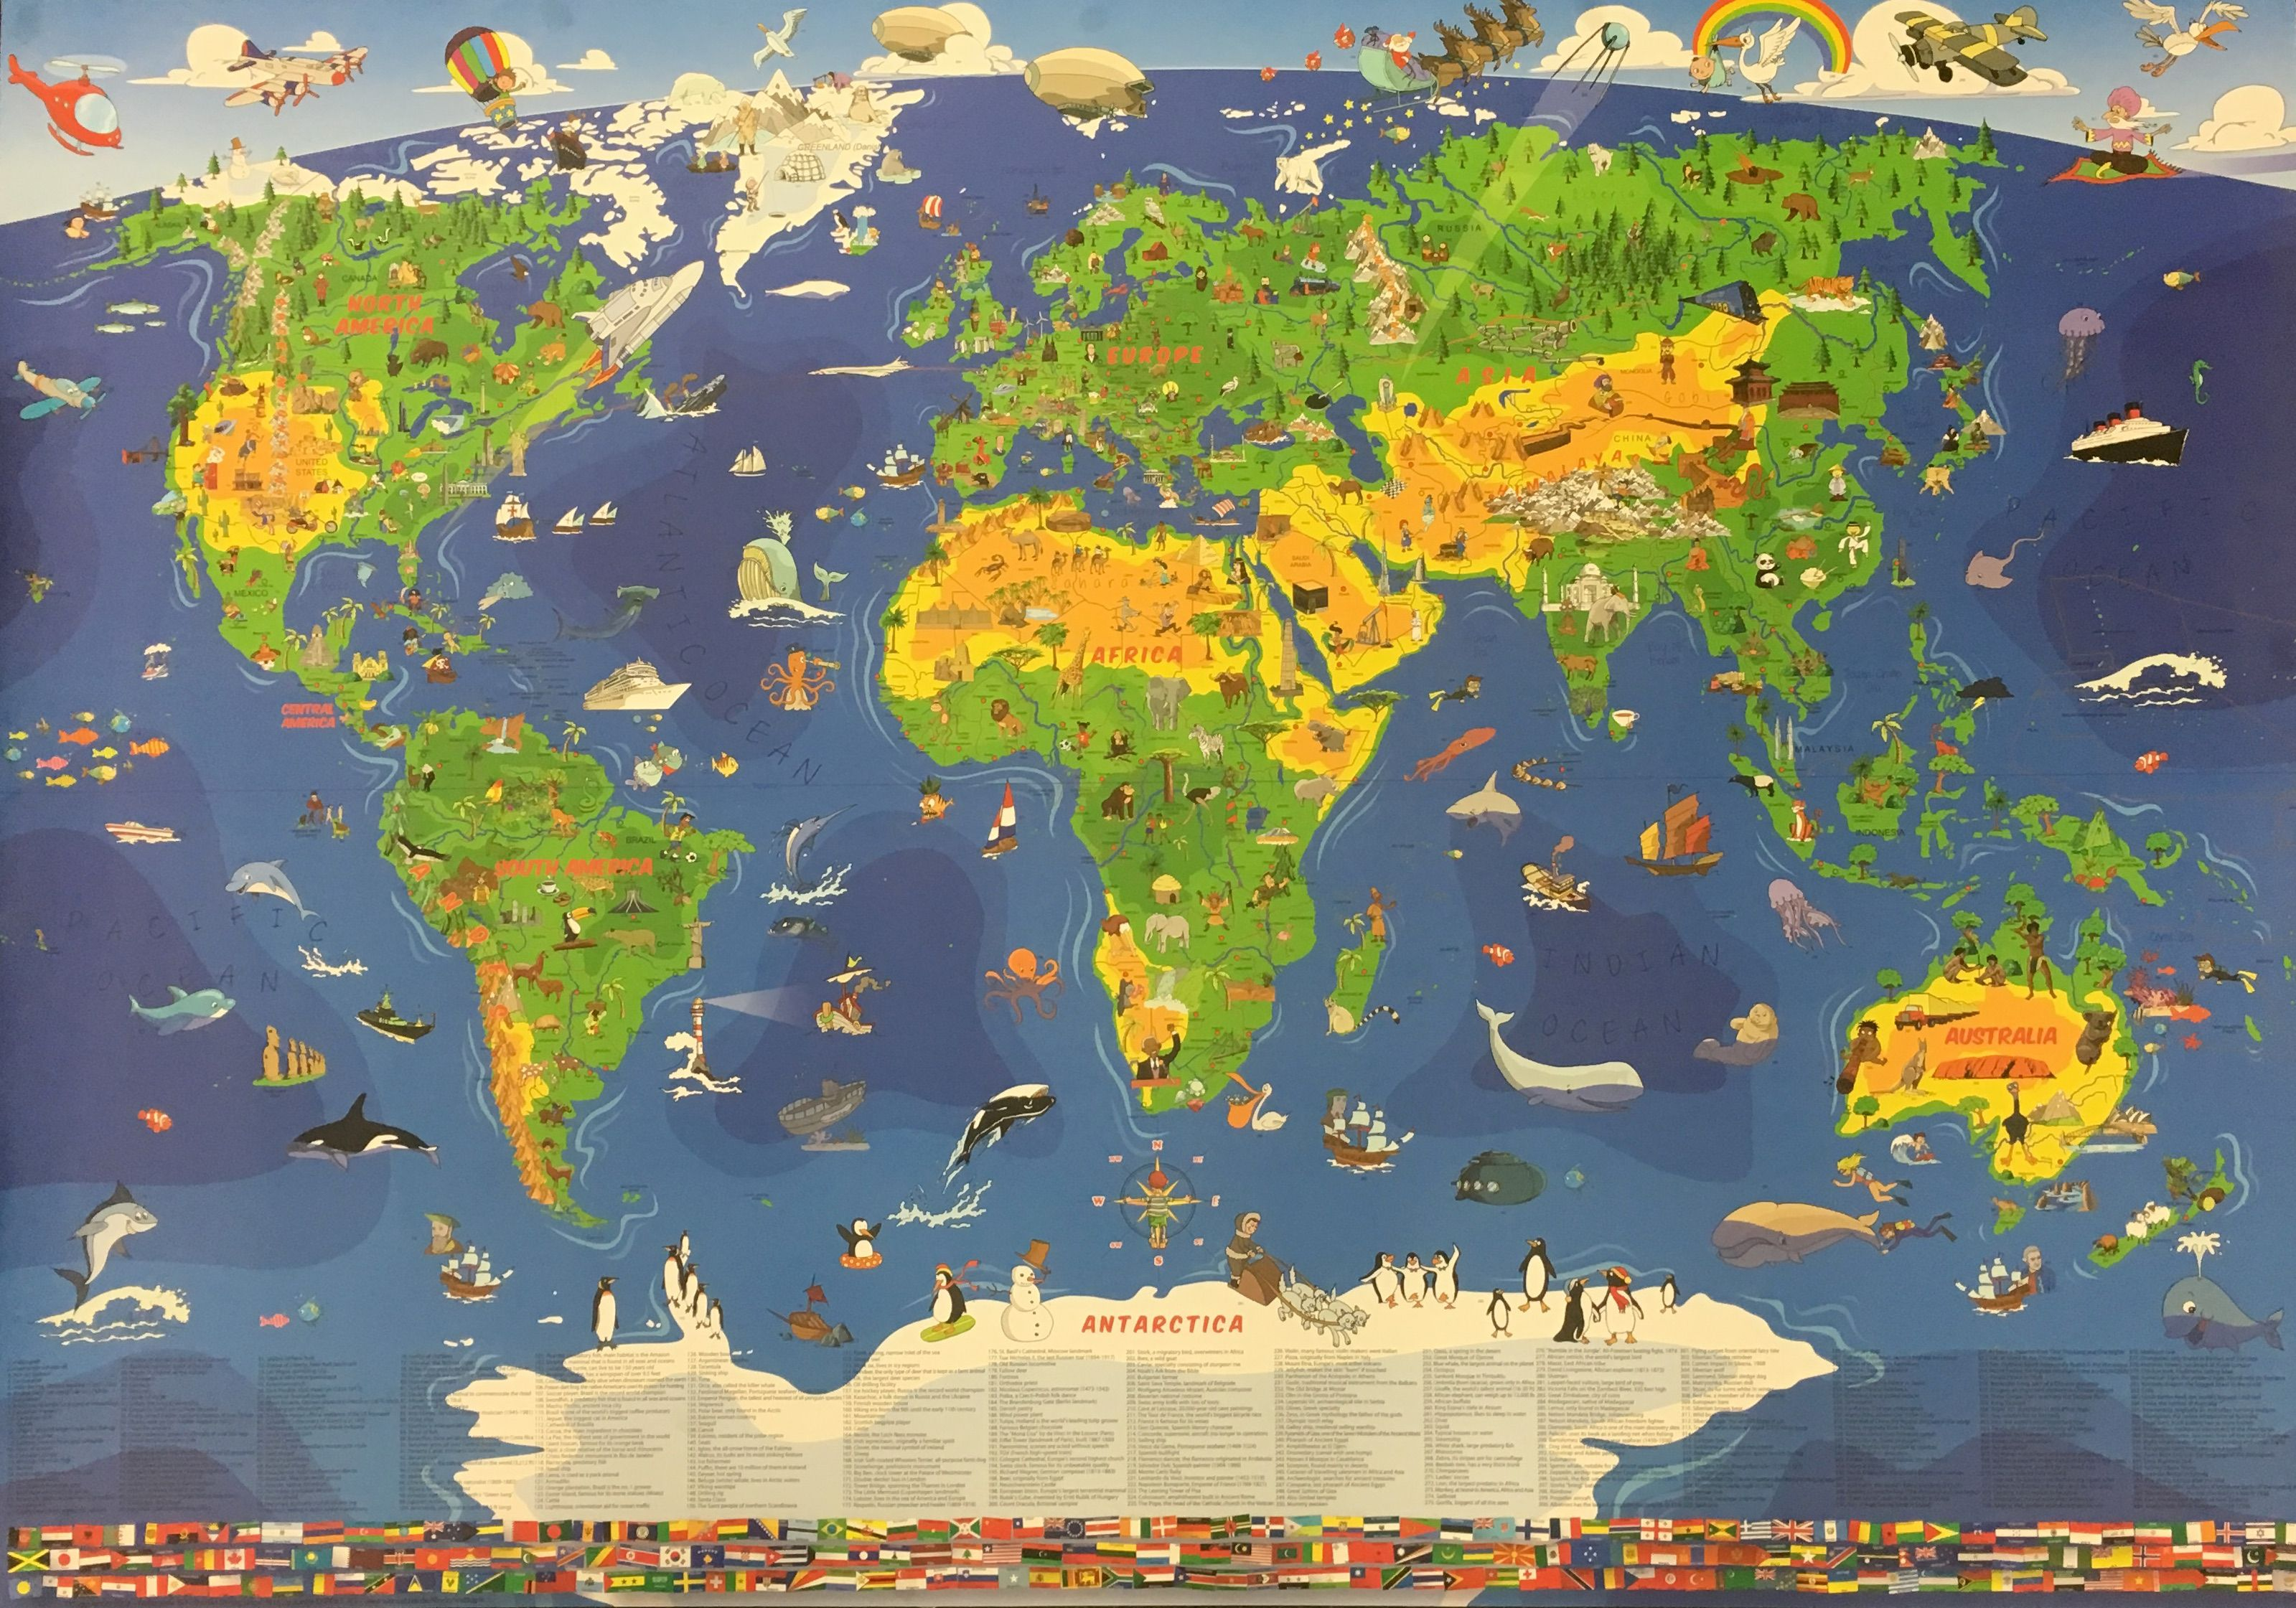 Childrens world map by geosmile 9349685003762 books hardie childrens world map by geosmile 9349685003762 books hardie grant gift gumiabroncs Image collections